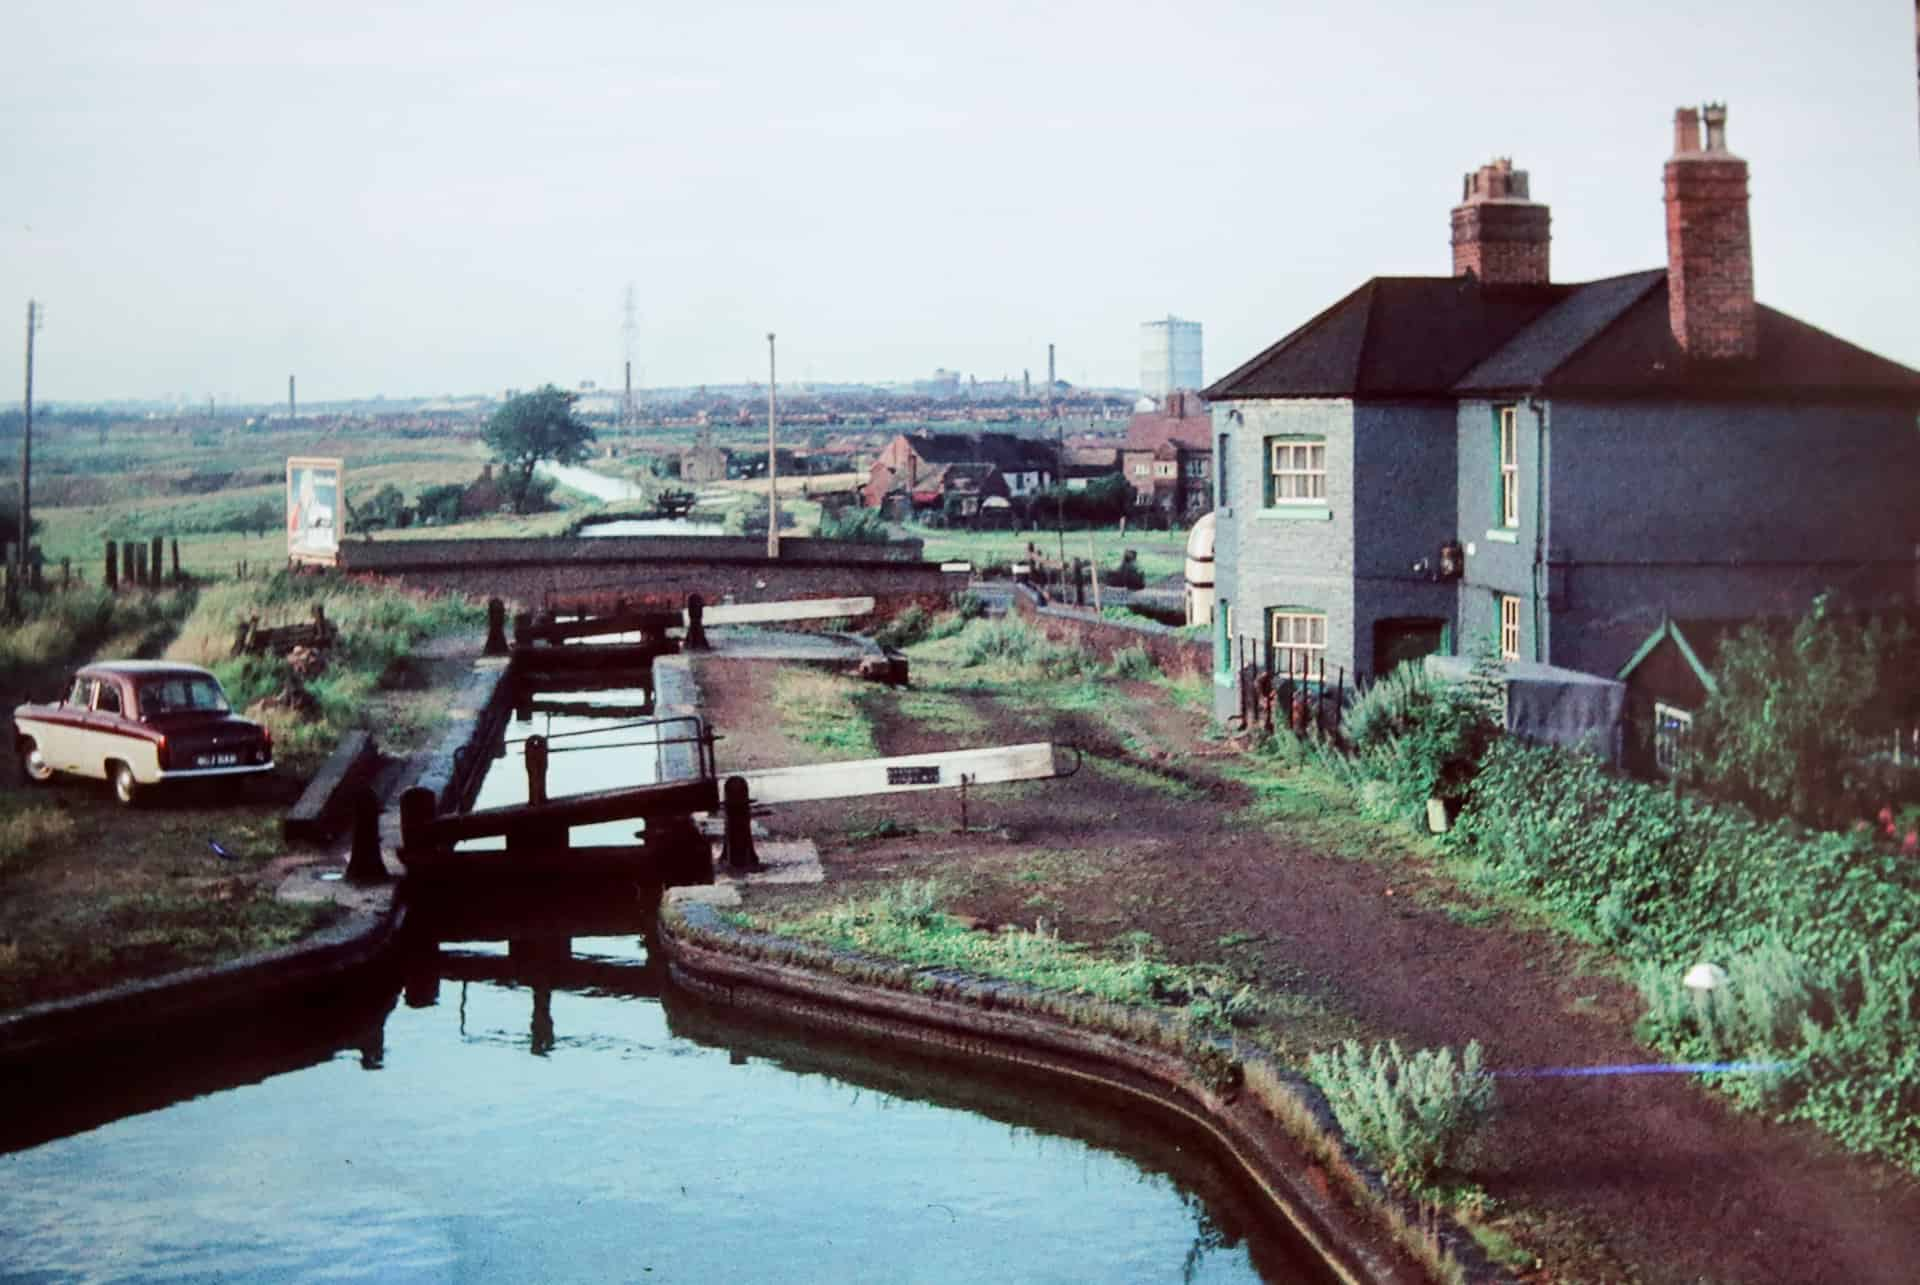 Brades Hall Locks and Lock Keepers House, c early 1960s